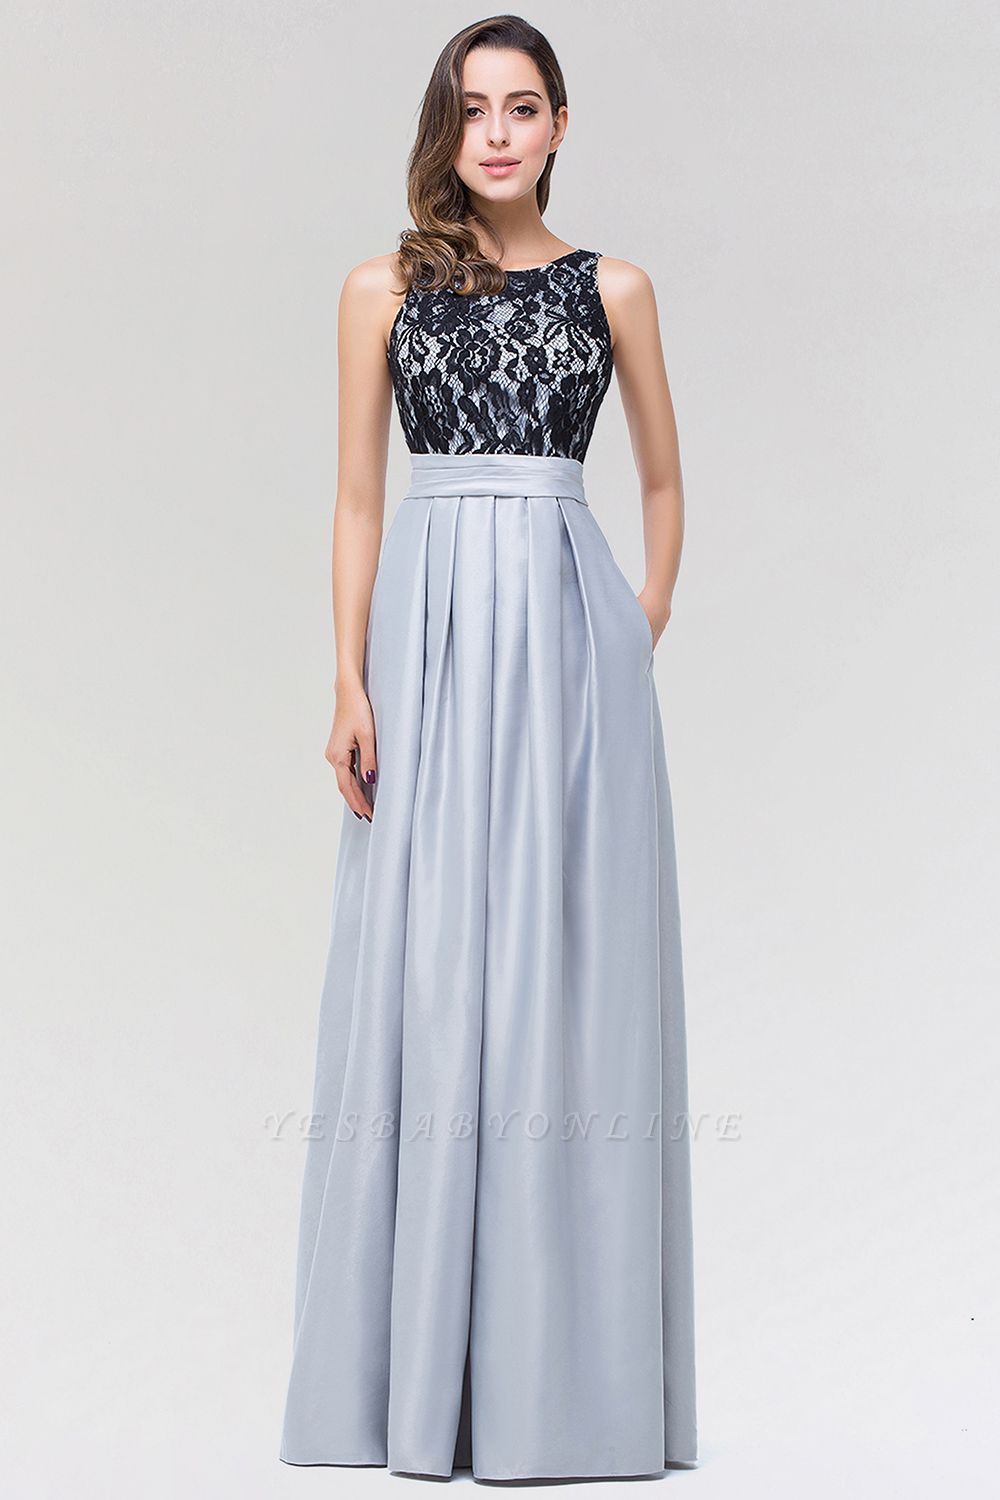 A-line Satin Lace Jewel Sleeveless Floor-length Bridesmaid Dresses with Ruffles